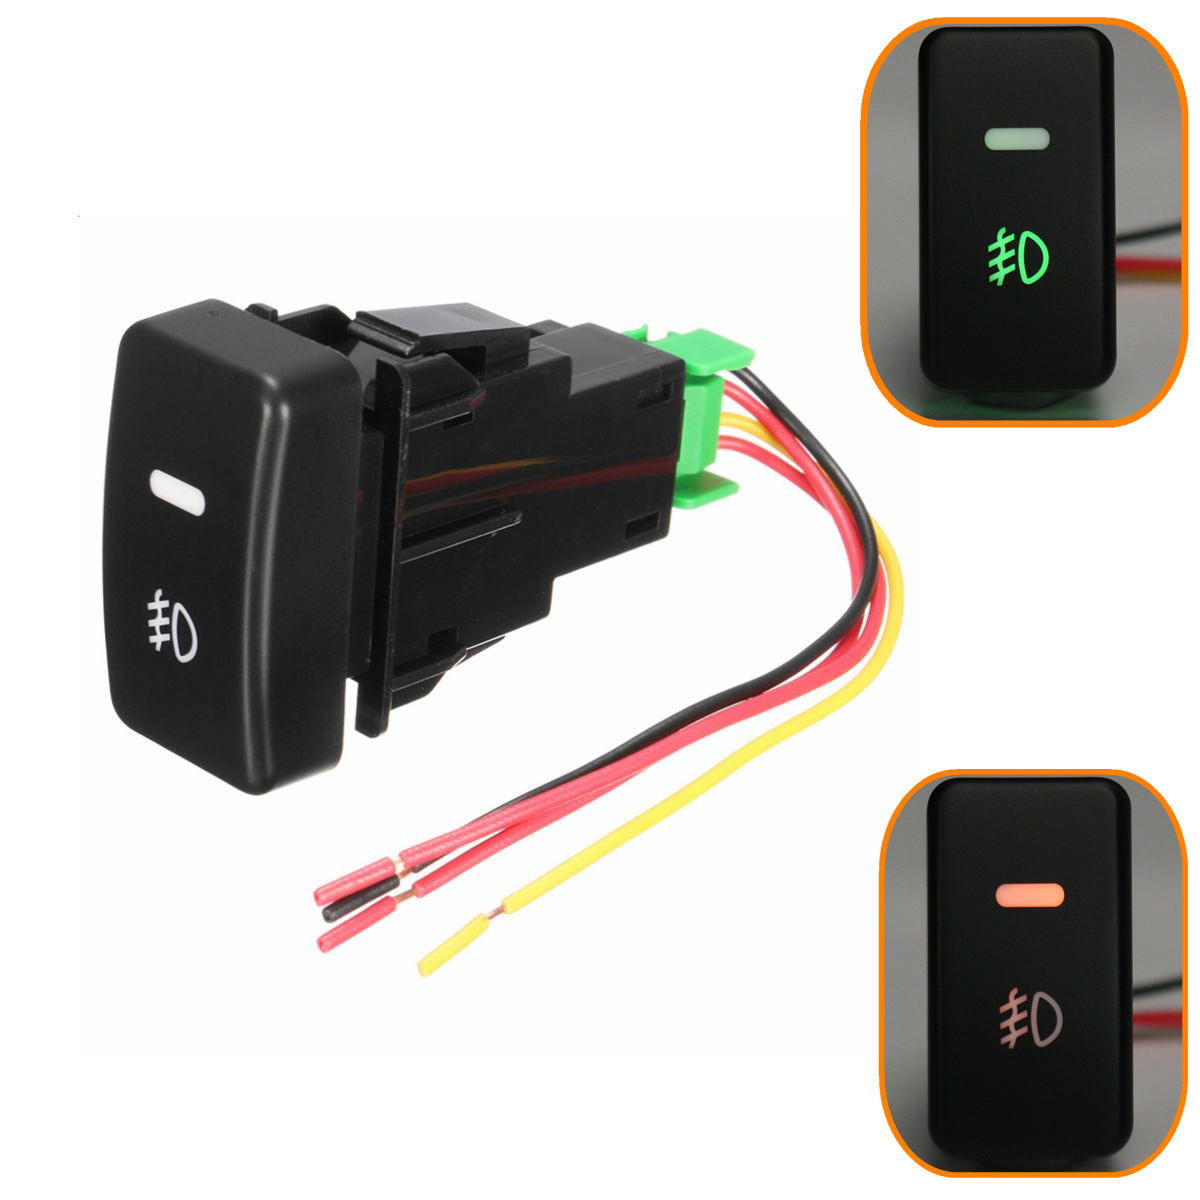 5 pin led car push button fog light switch wire for honda. Black Bedroom Furniture Sets. Home Design Ideas